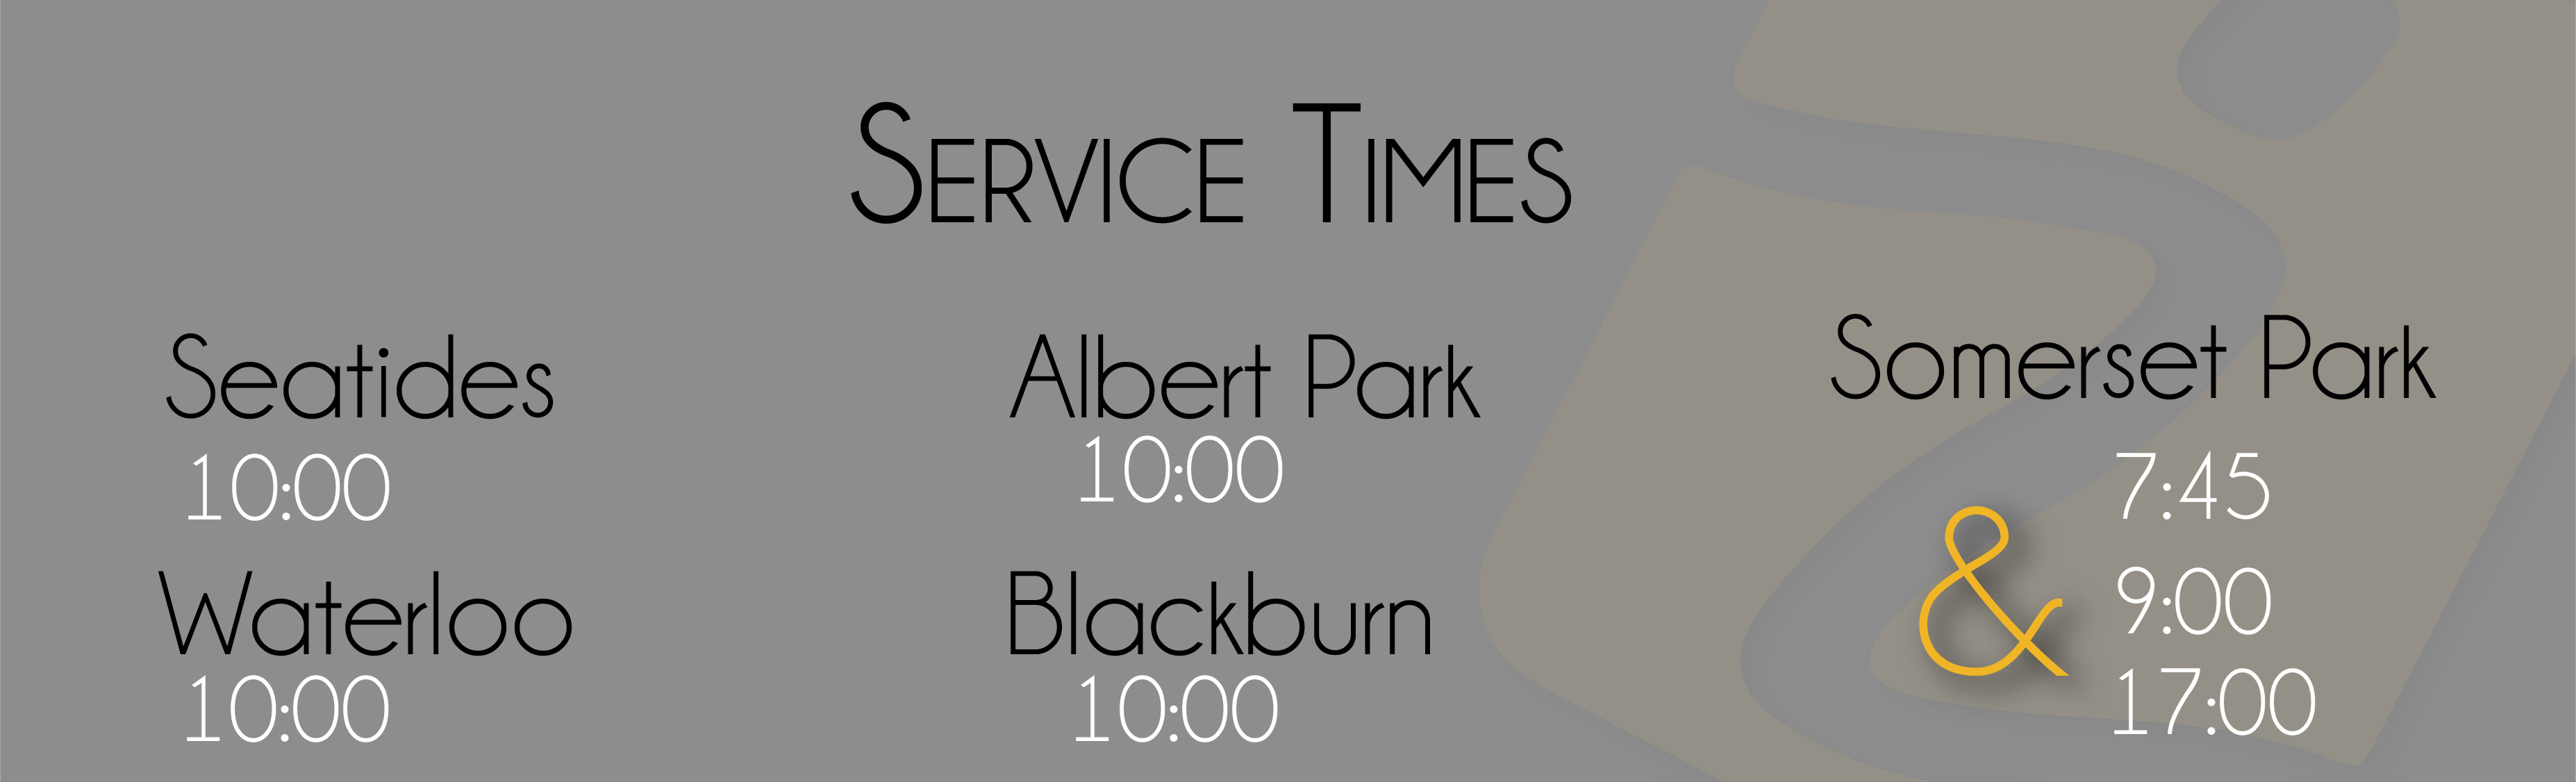 Service_Times_new